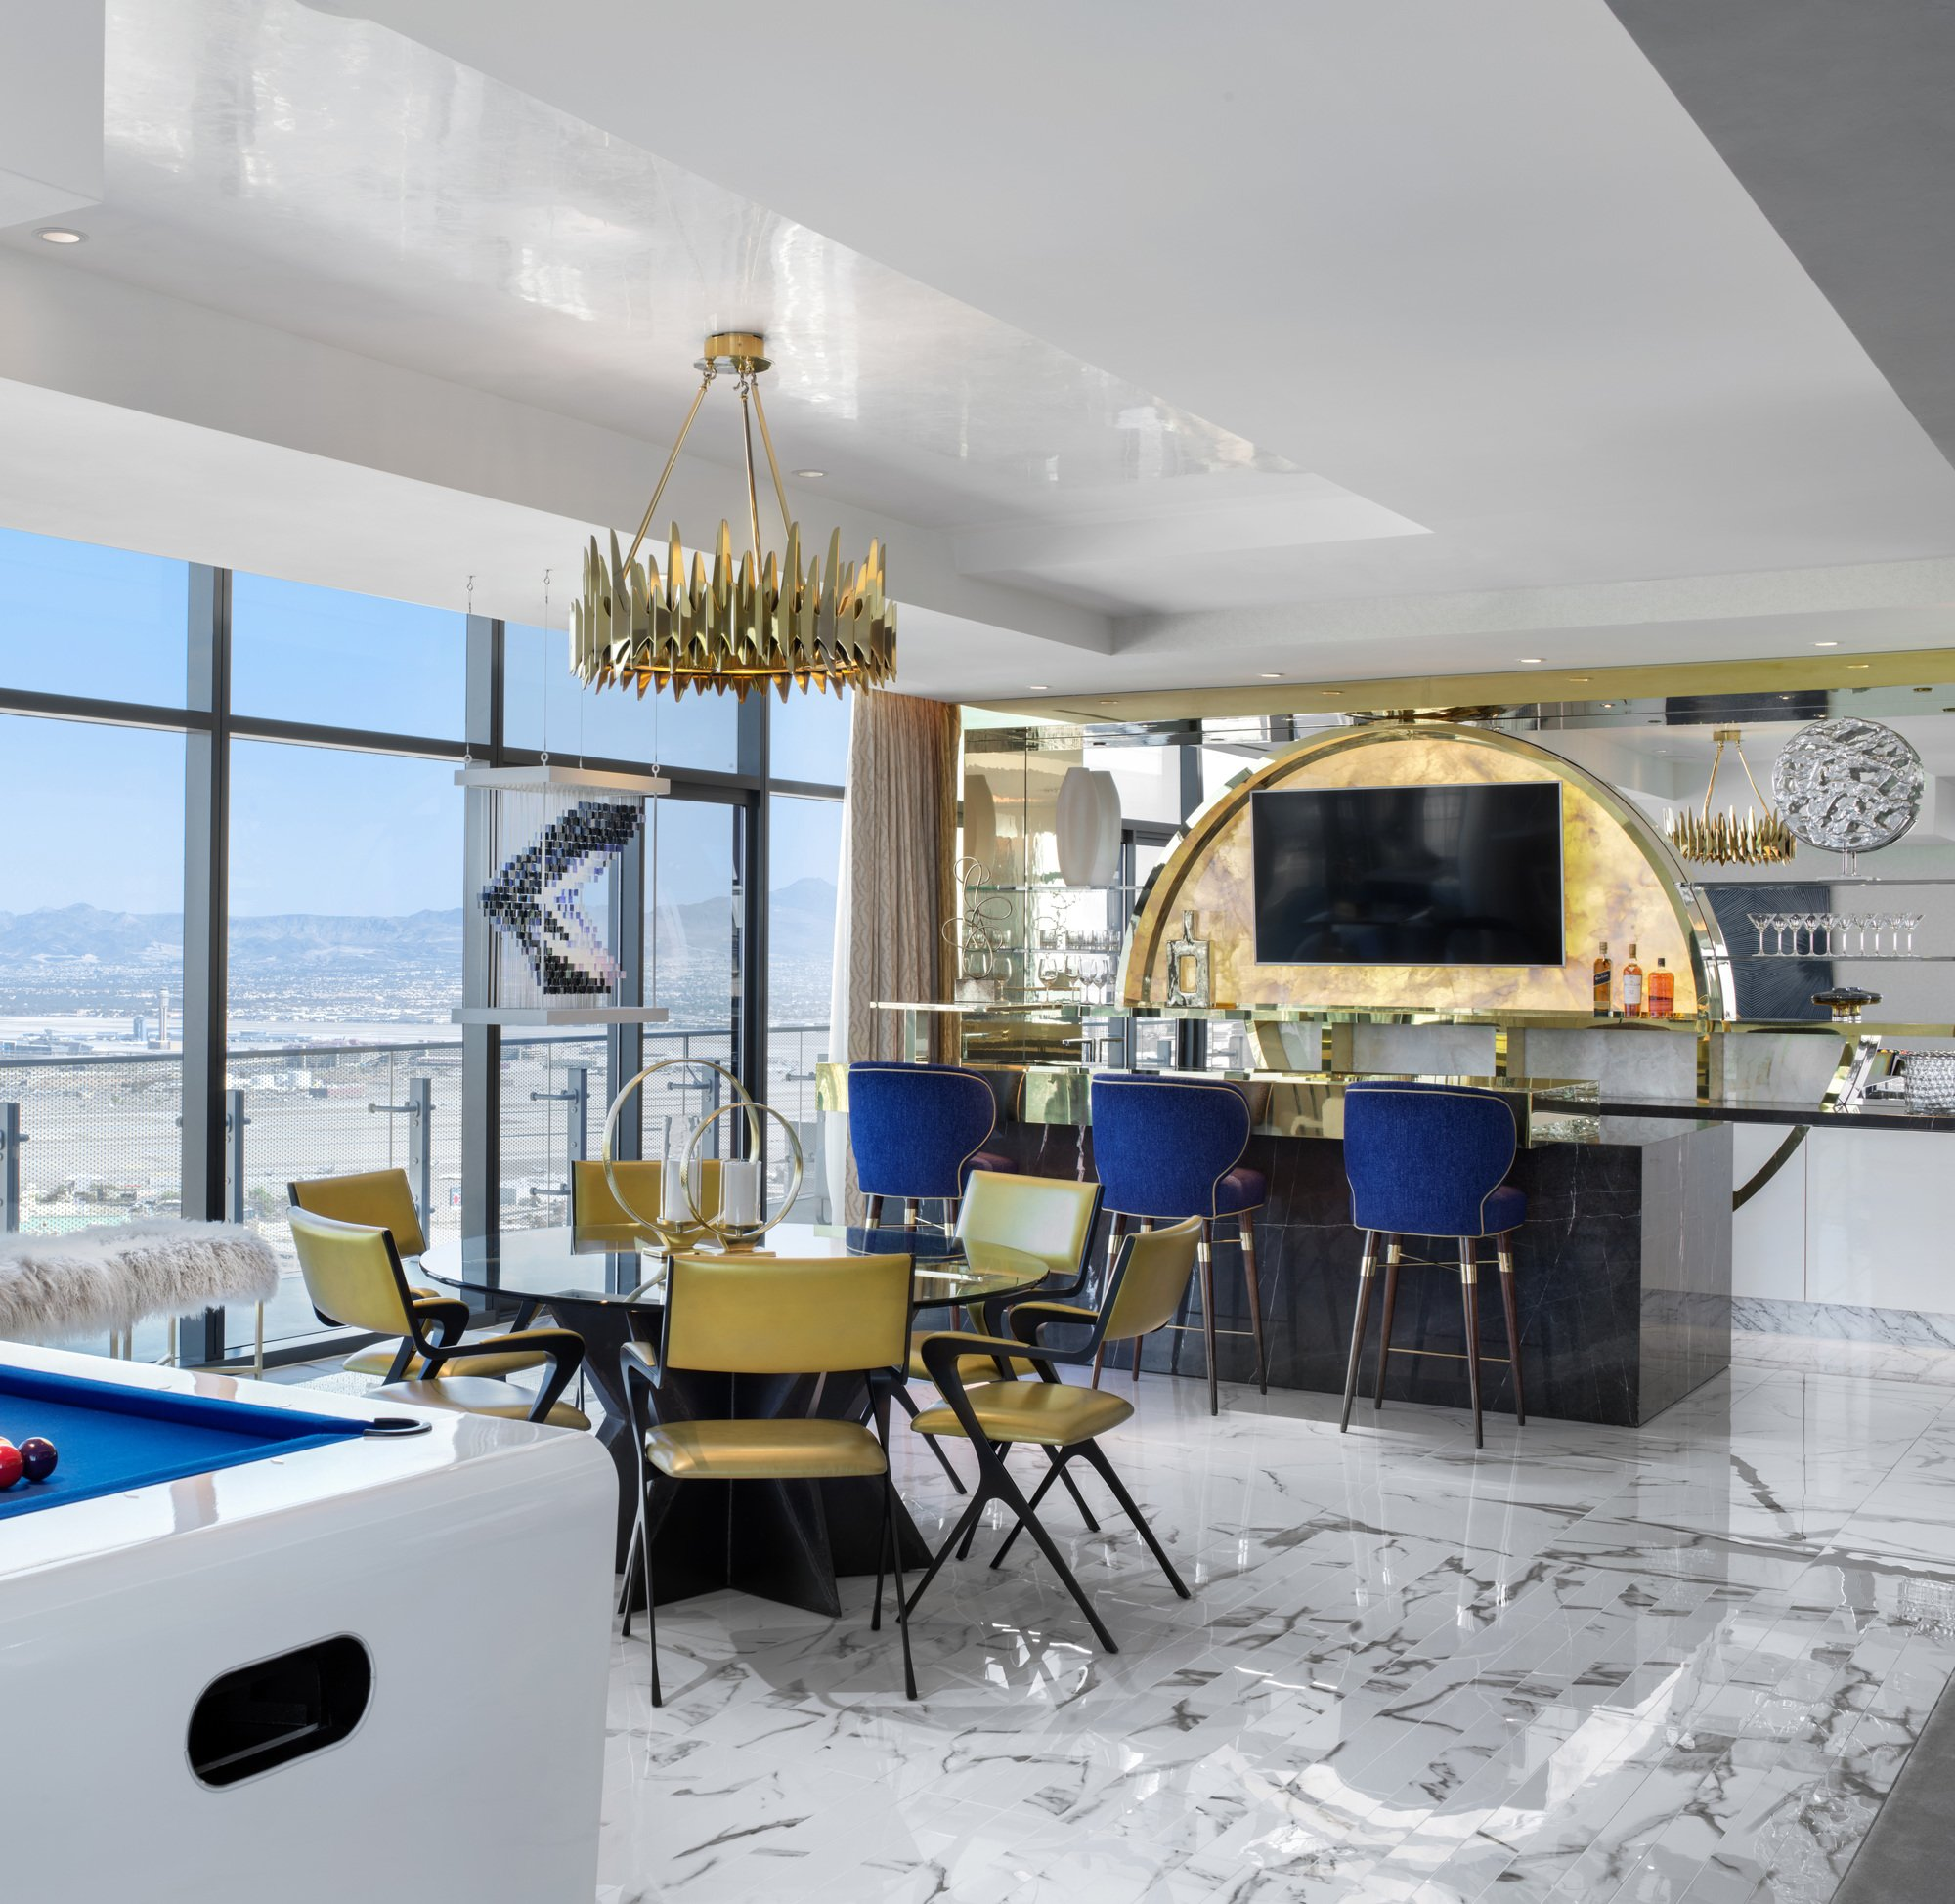 Cosmopolitan Hotel - Las Vegas, USA with Louis Bar Chair by Ottiu